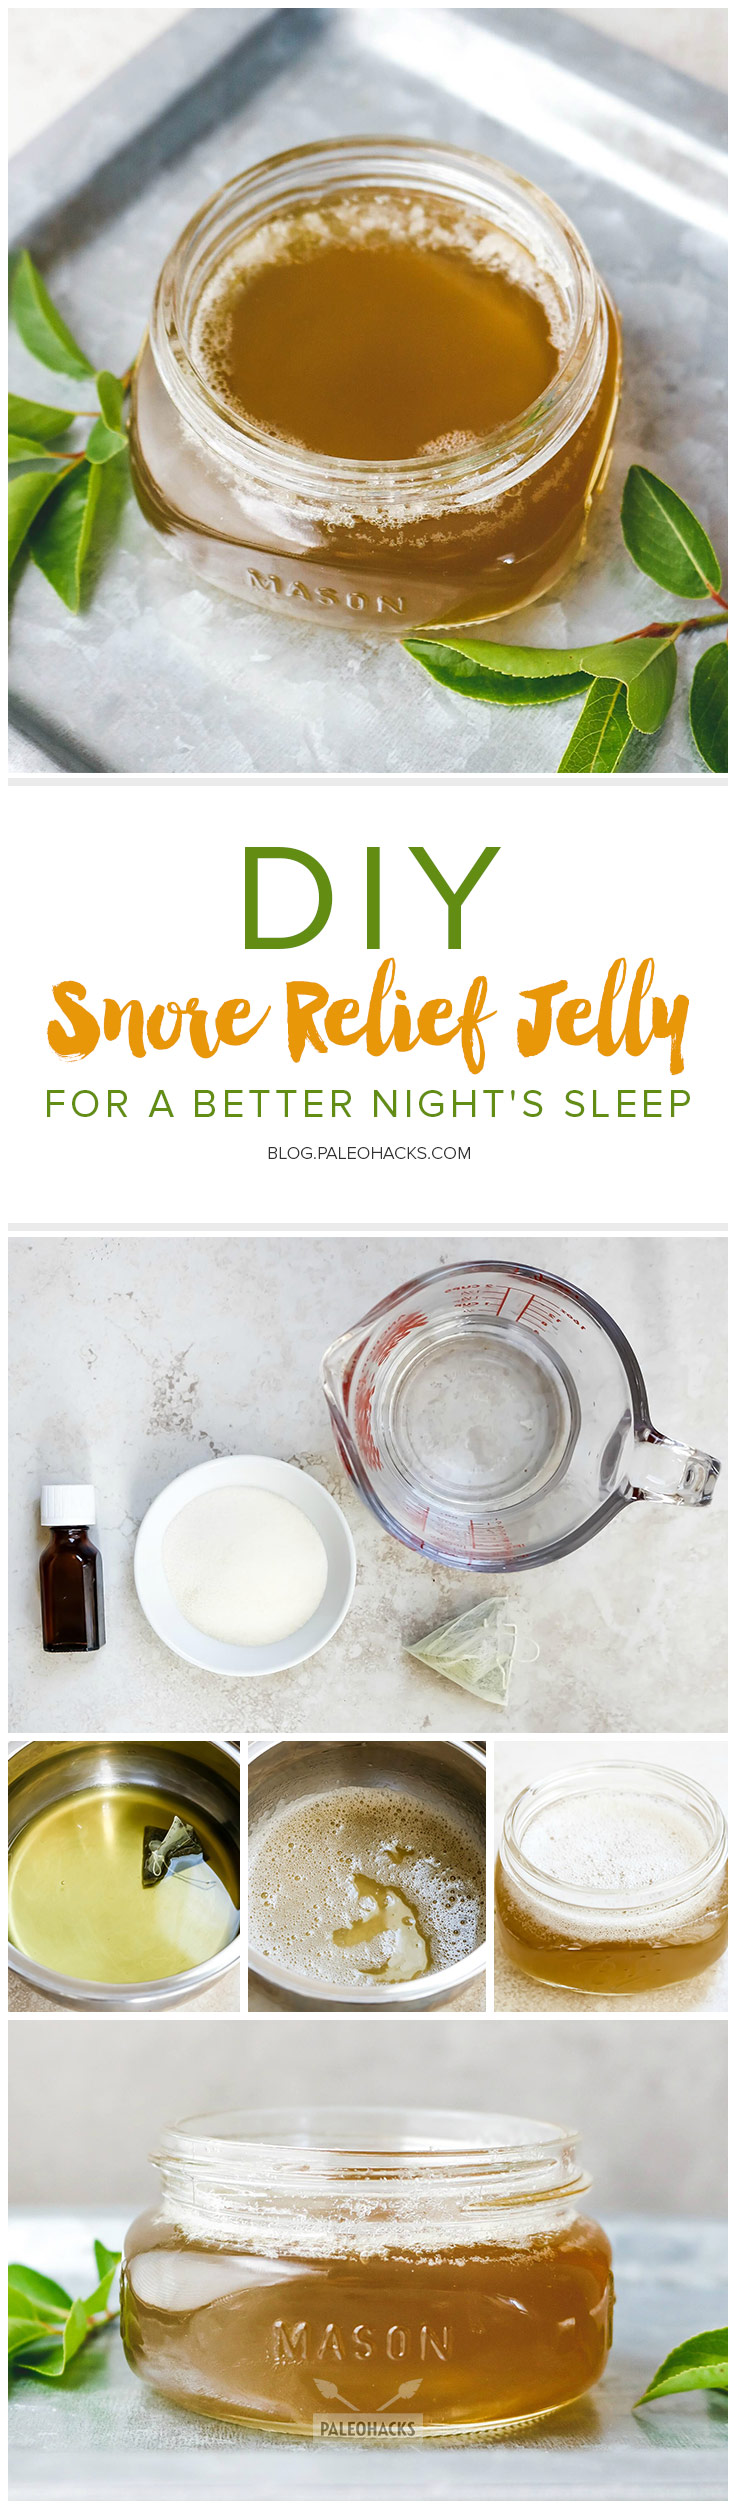 BEAUTY-PIN-DIY-Snore-Relief-Jelly-for-a-Better-Night_s-Sleep.jpg